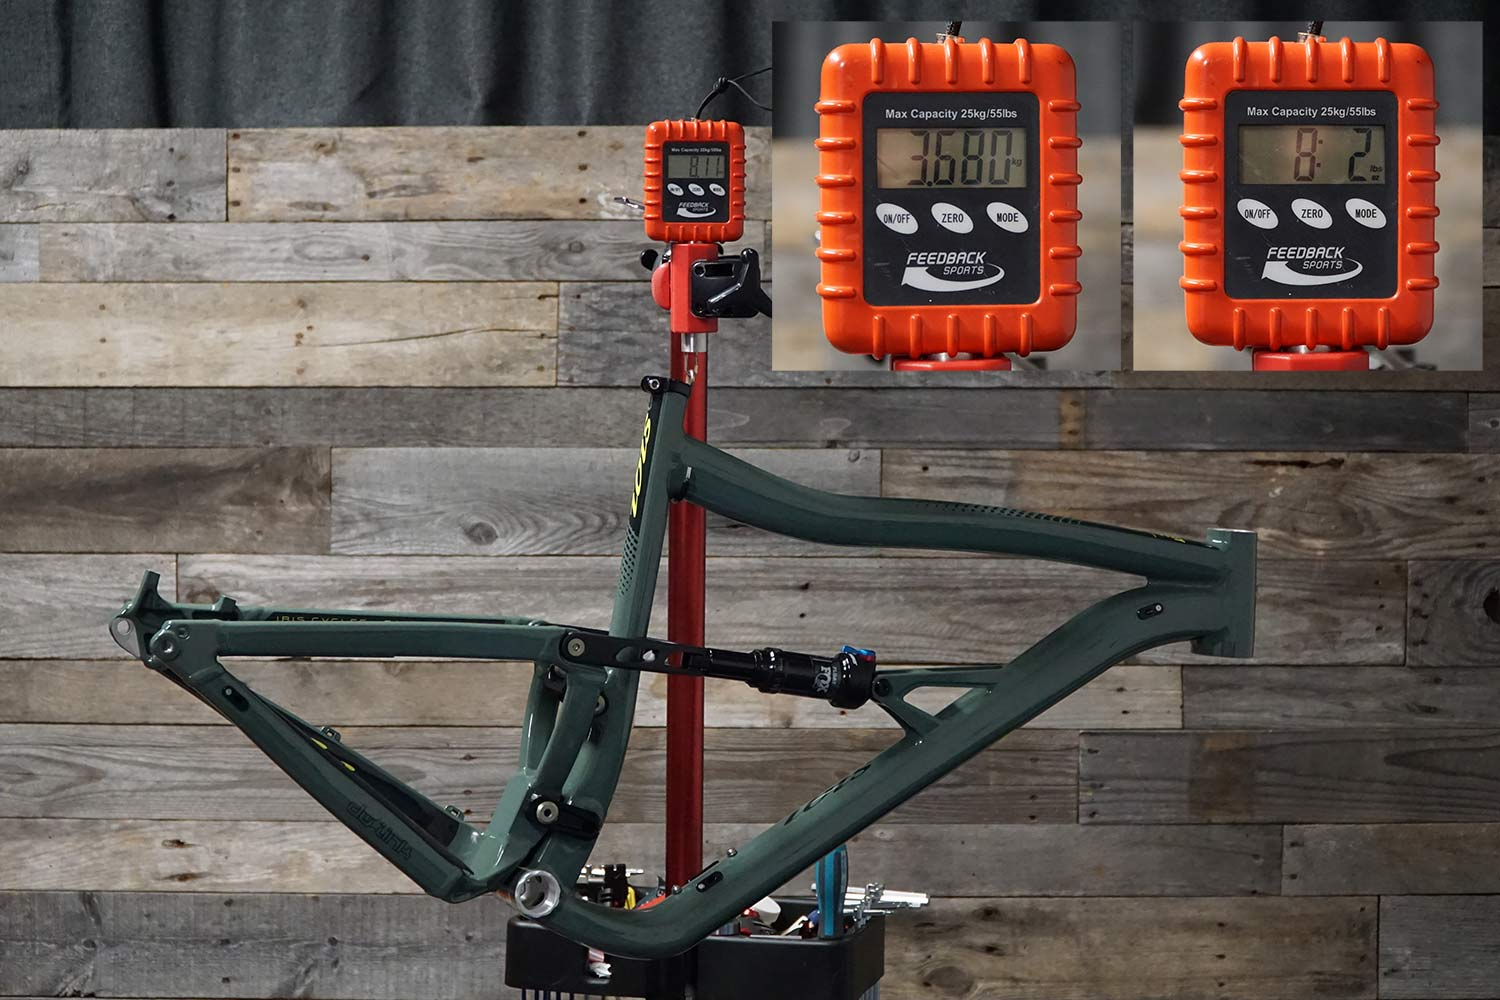 ibis ripley af alloy frame actual weight